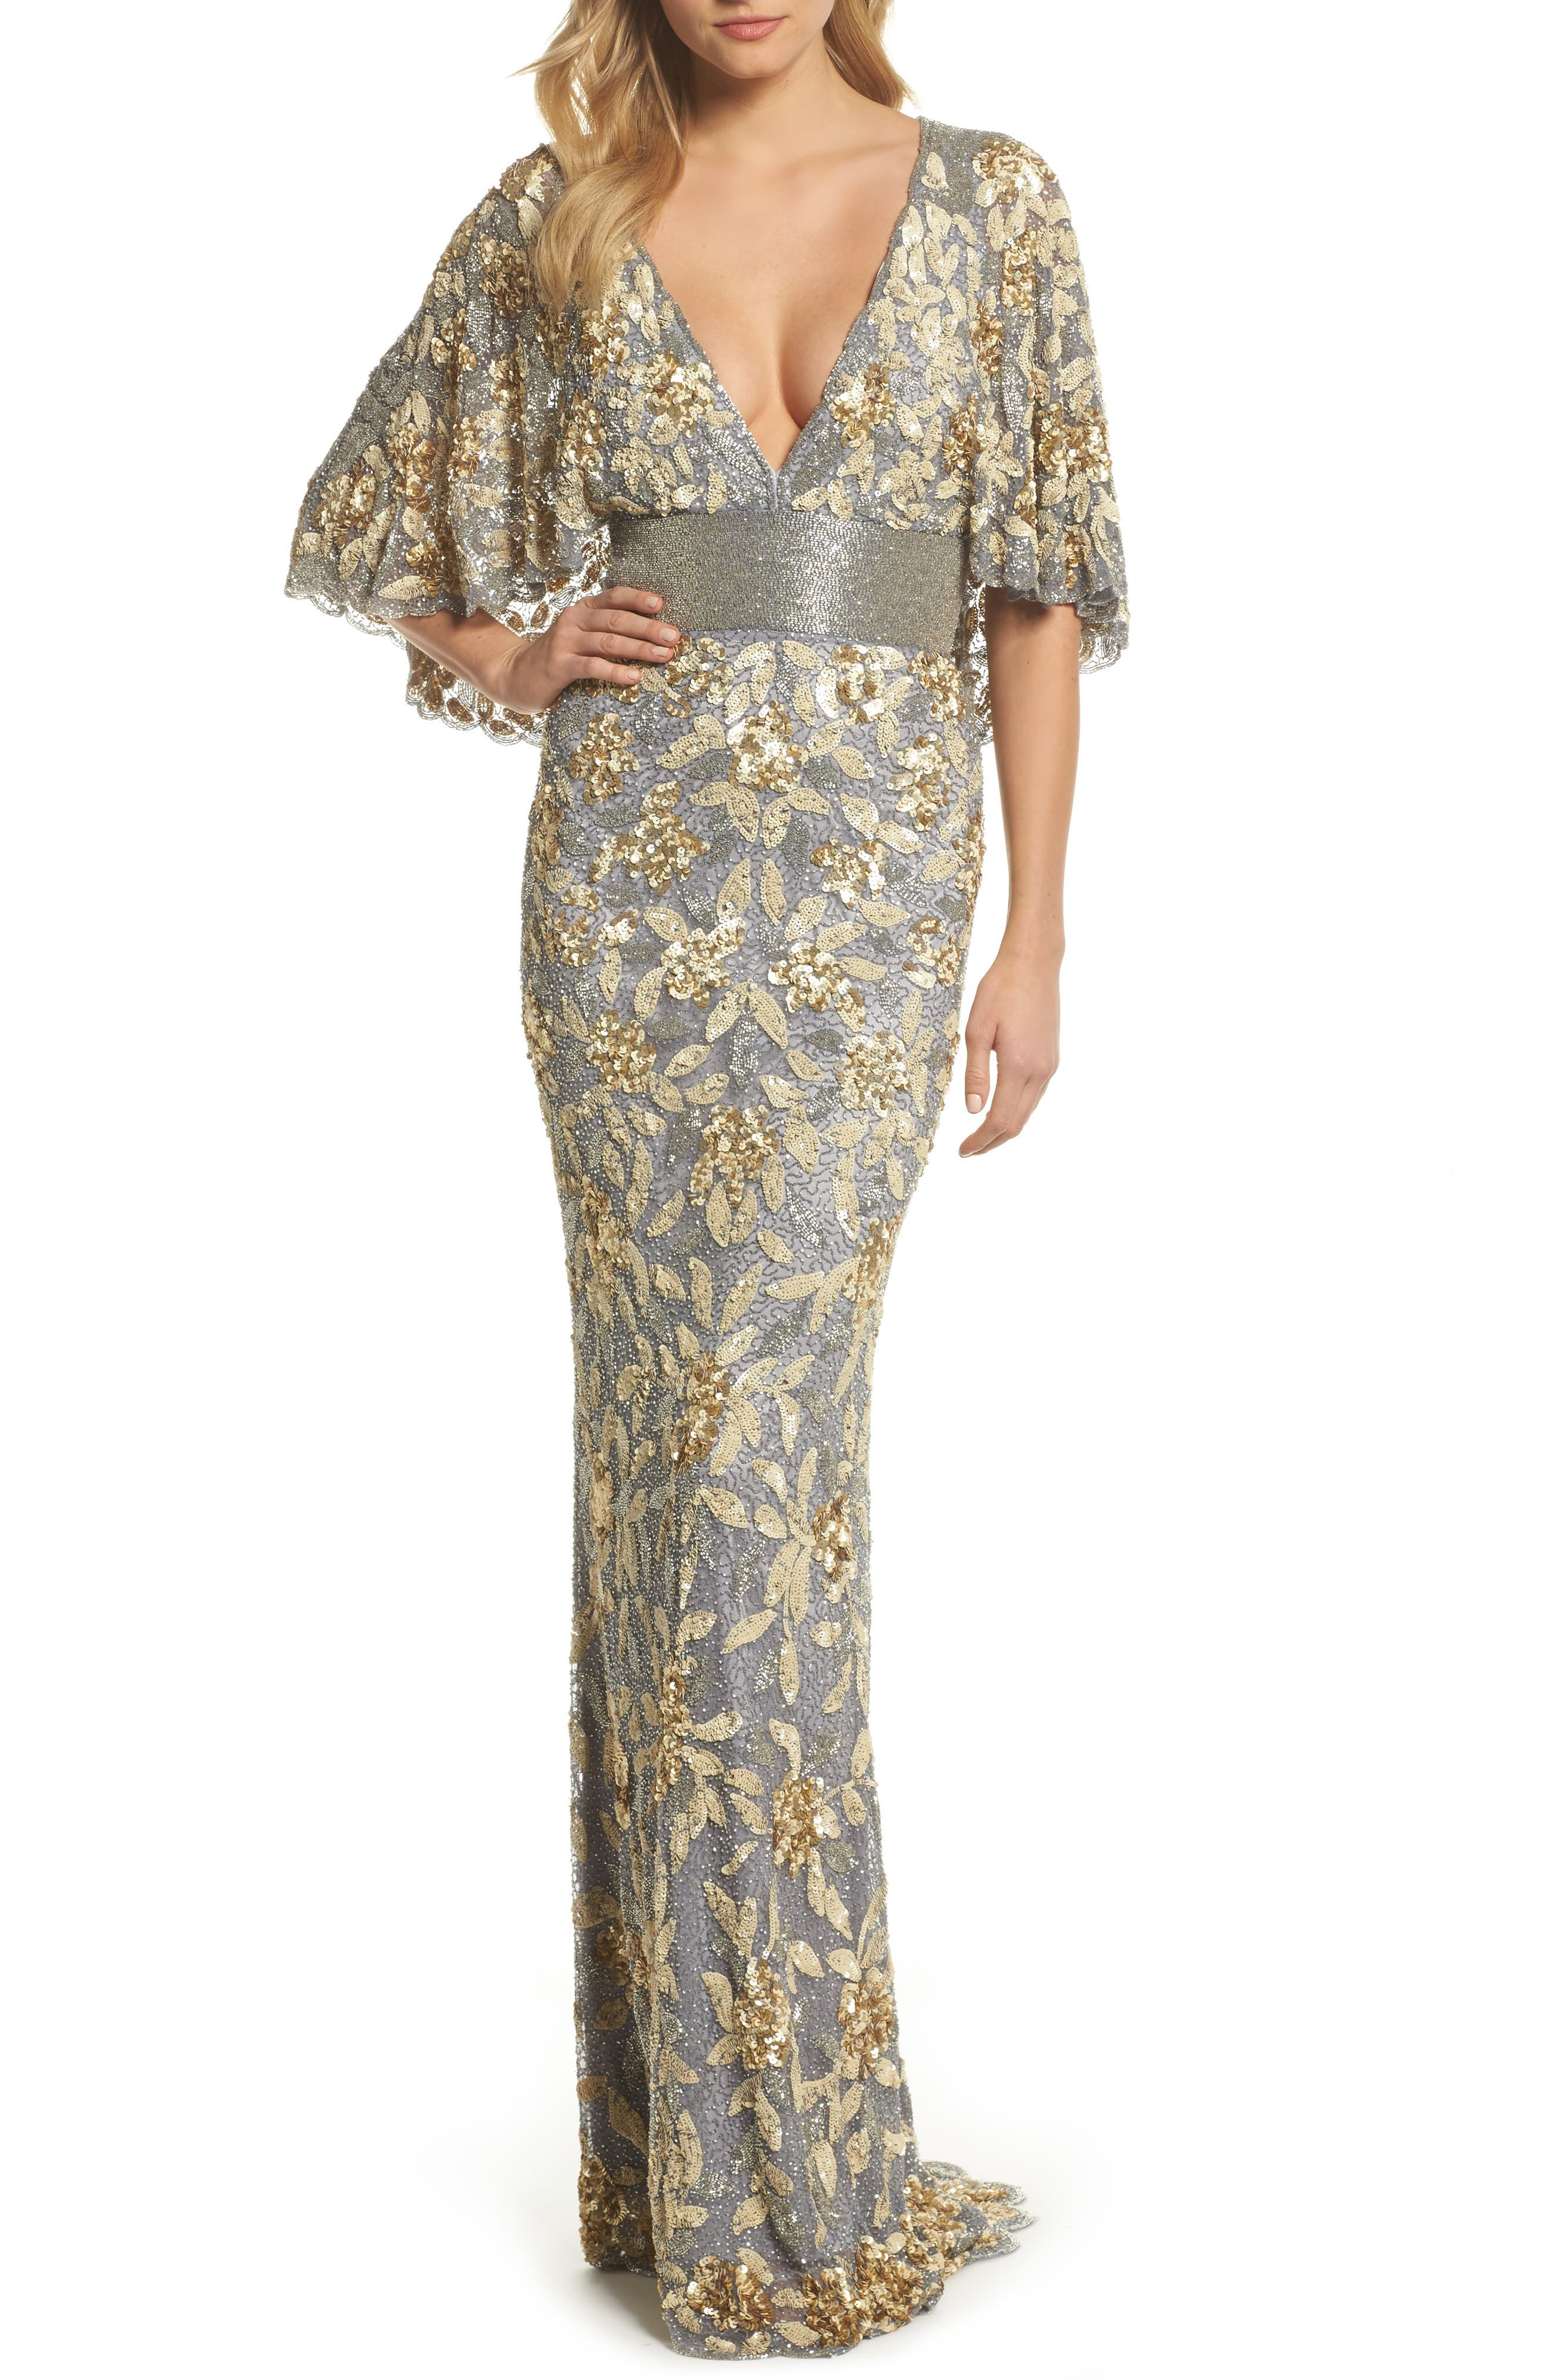 1930s Outfit Ideas for Women Womens MAC Duggal Sequin  Bead Embellished Gown Size 2 - Metallic $698.00 AT vintagedancer.com